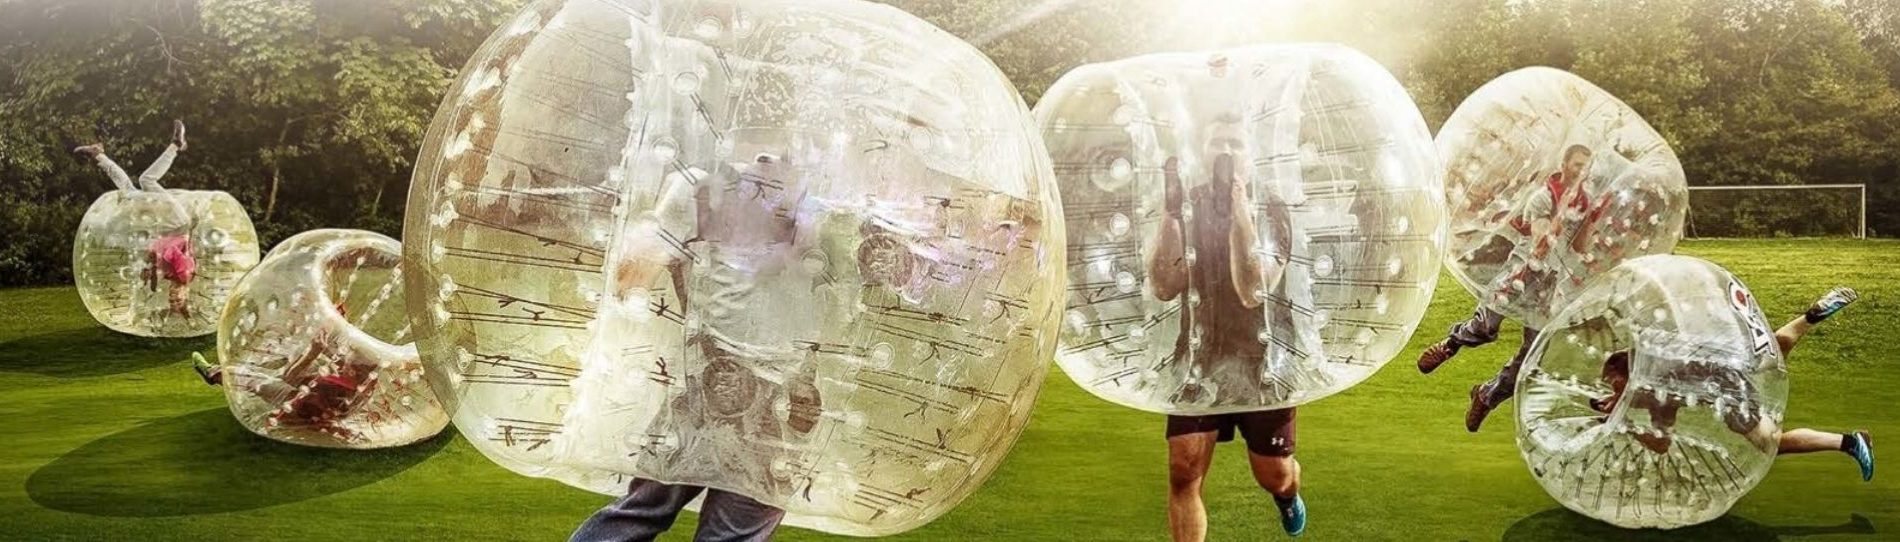 guys playing bubble soccer outside